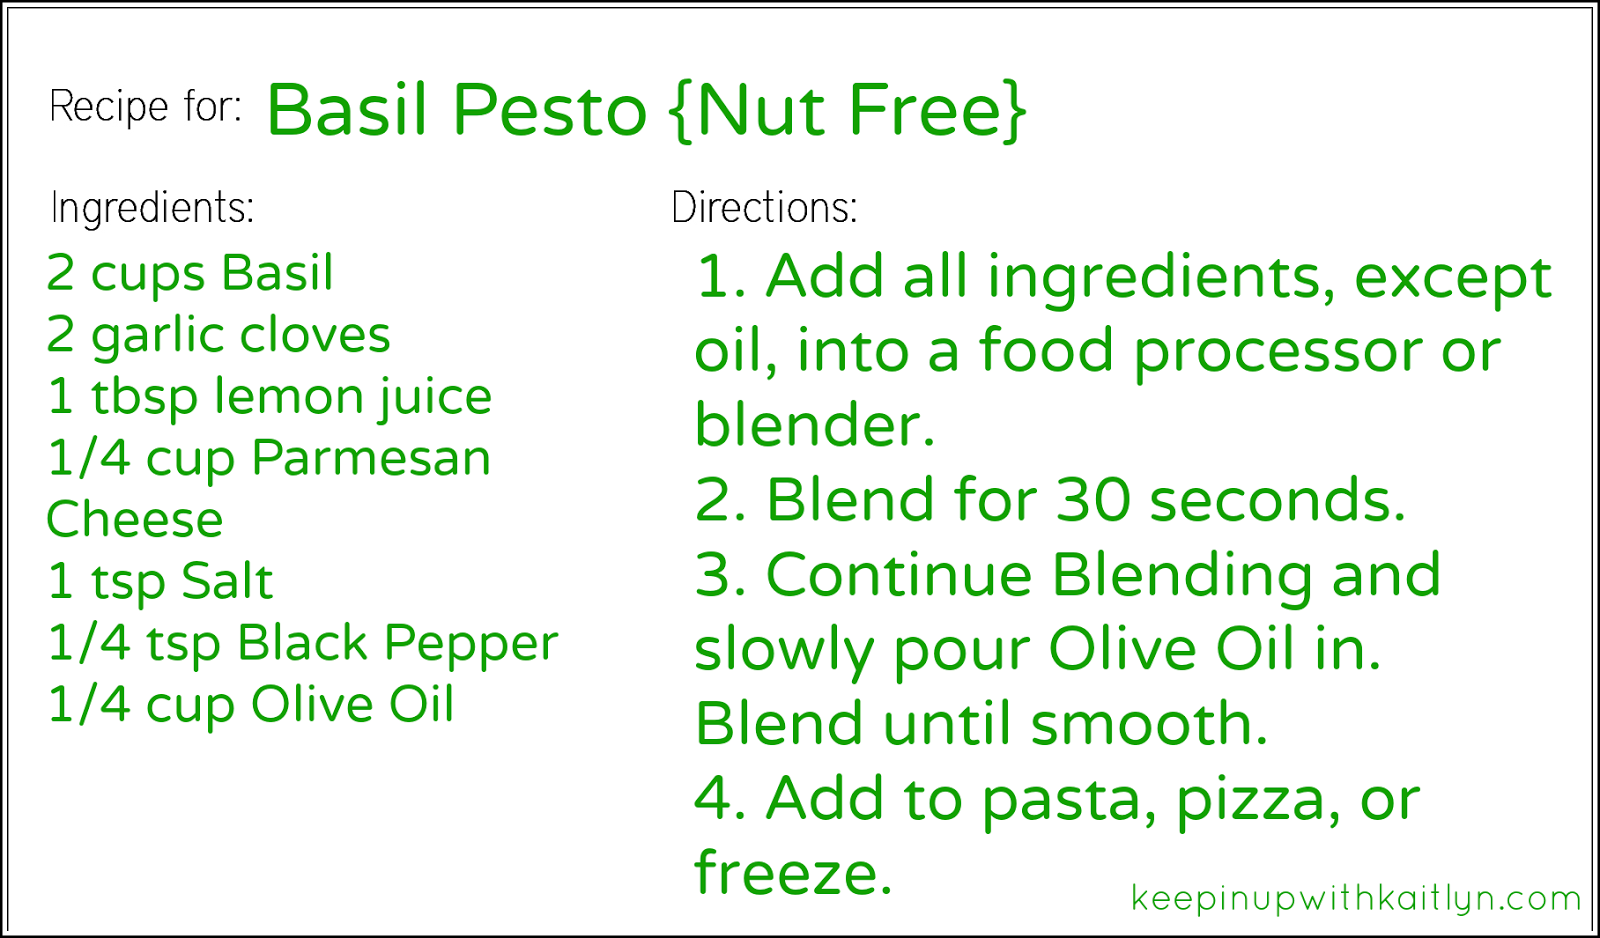 Basil Pesto Recipe Card